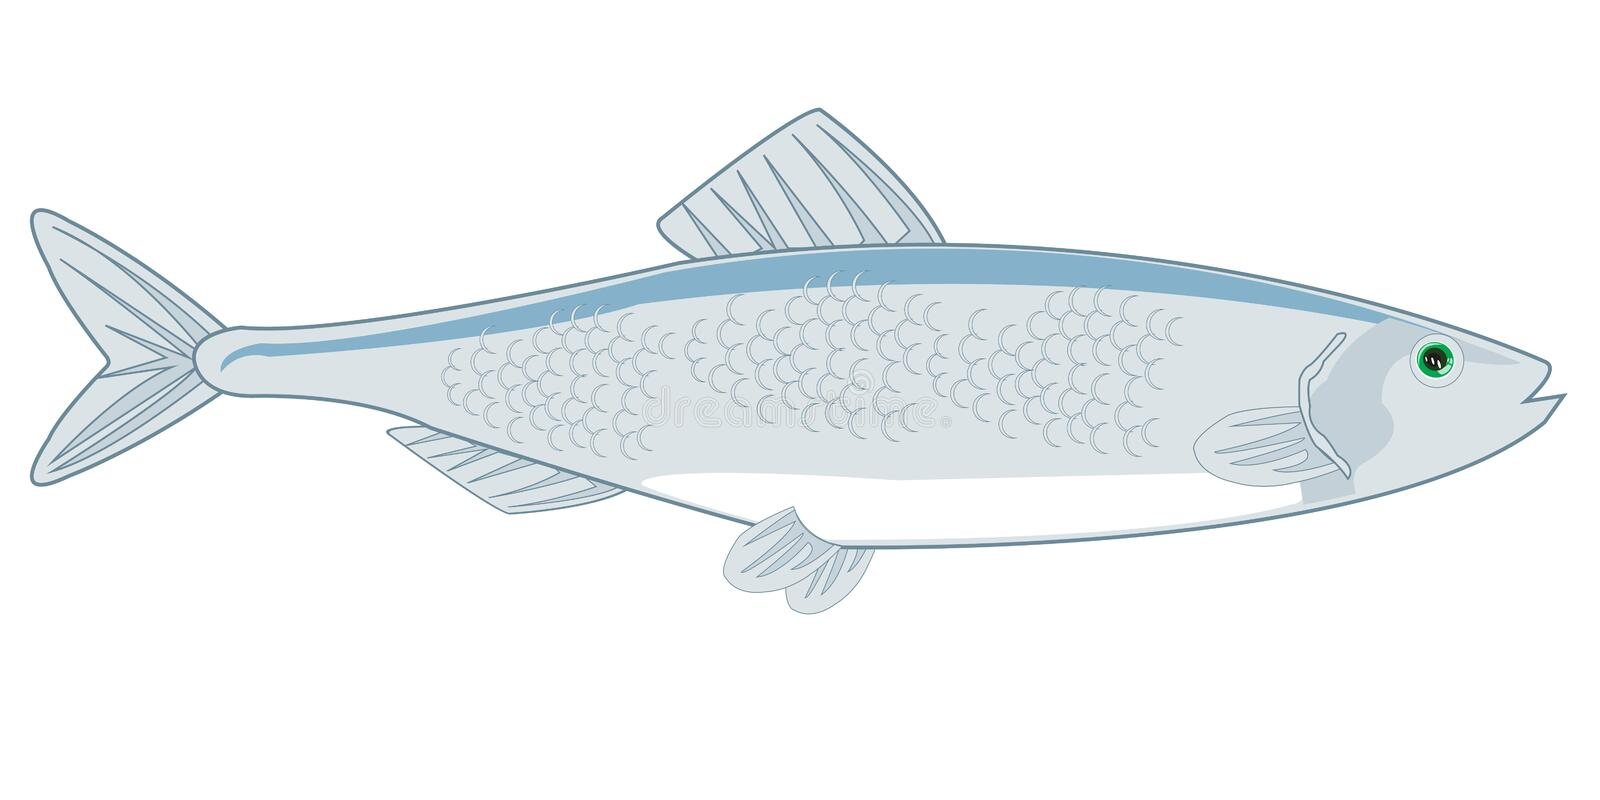 Fish herring on white background is insulated. Vector illustration of the cartoon of sea commercial fish herring vector illustration